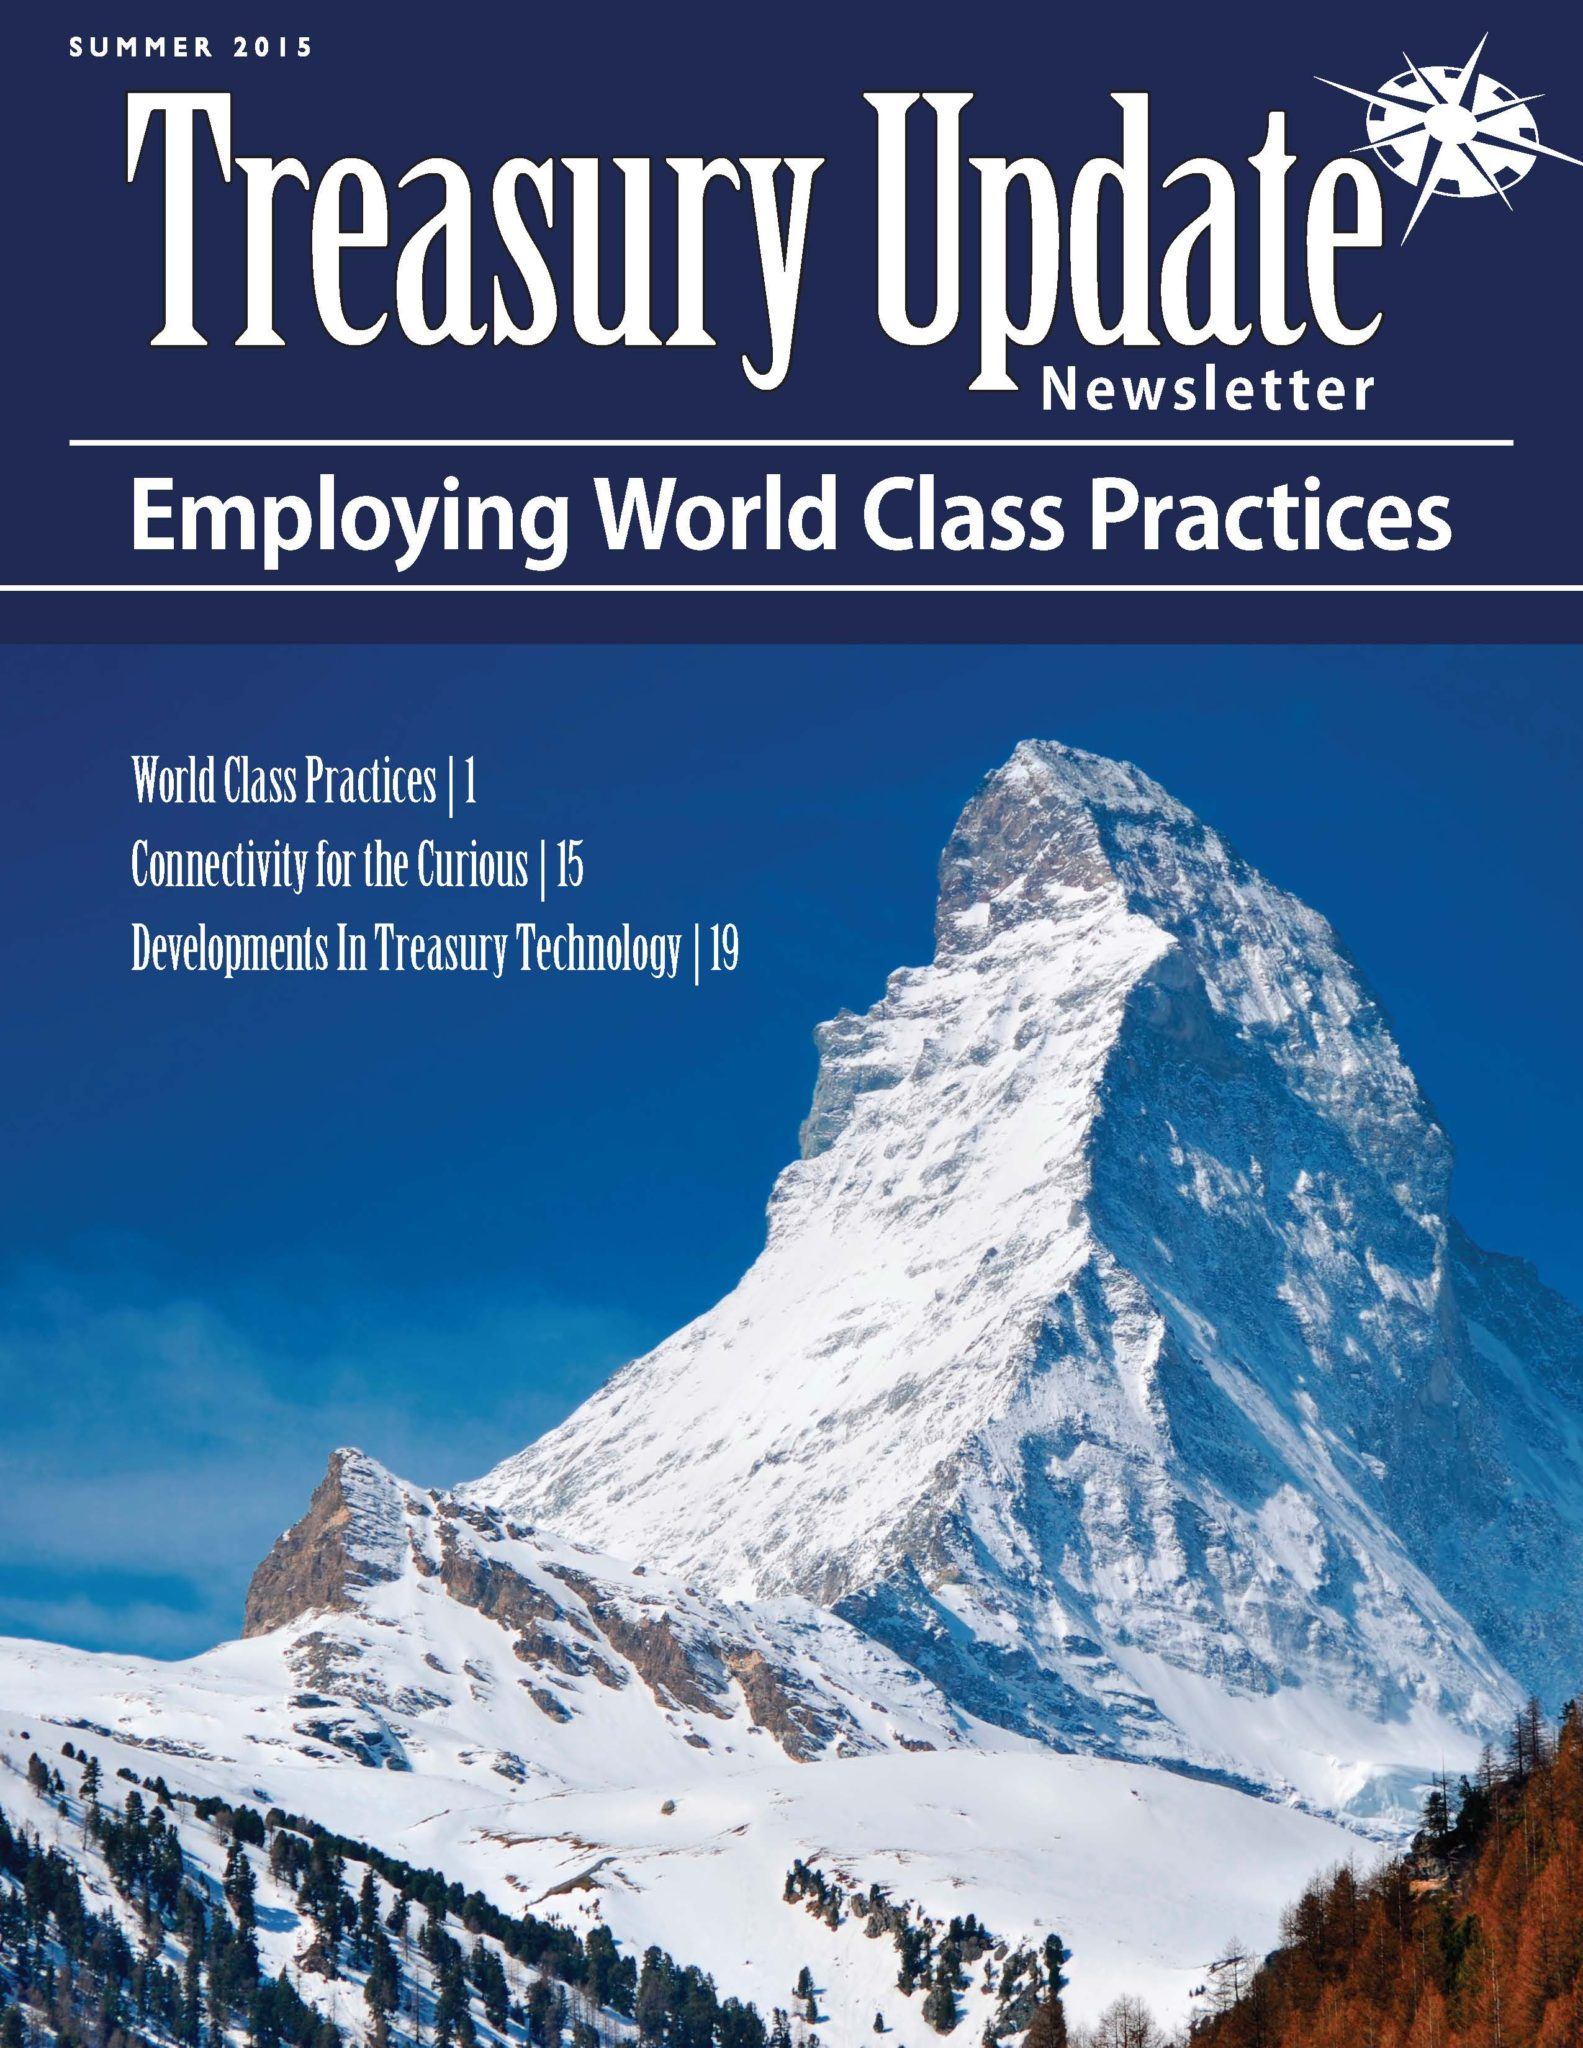 Summer 2015 Treasury Update Newsletter